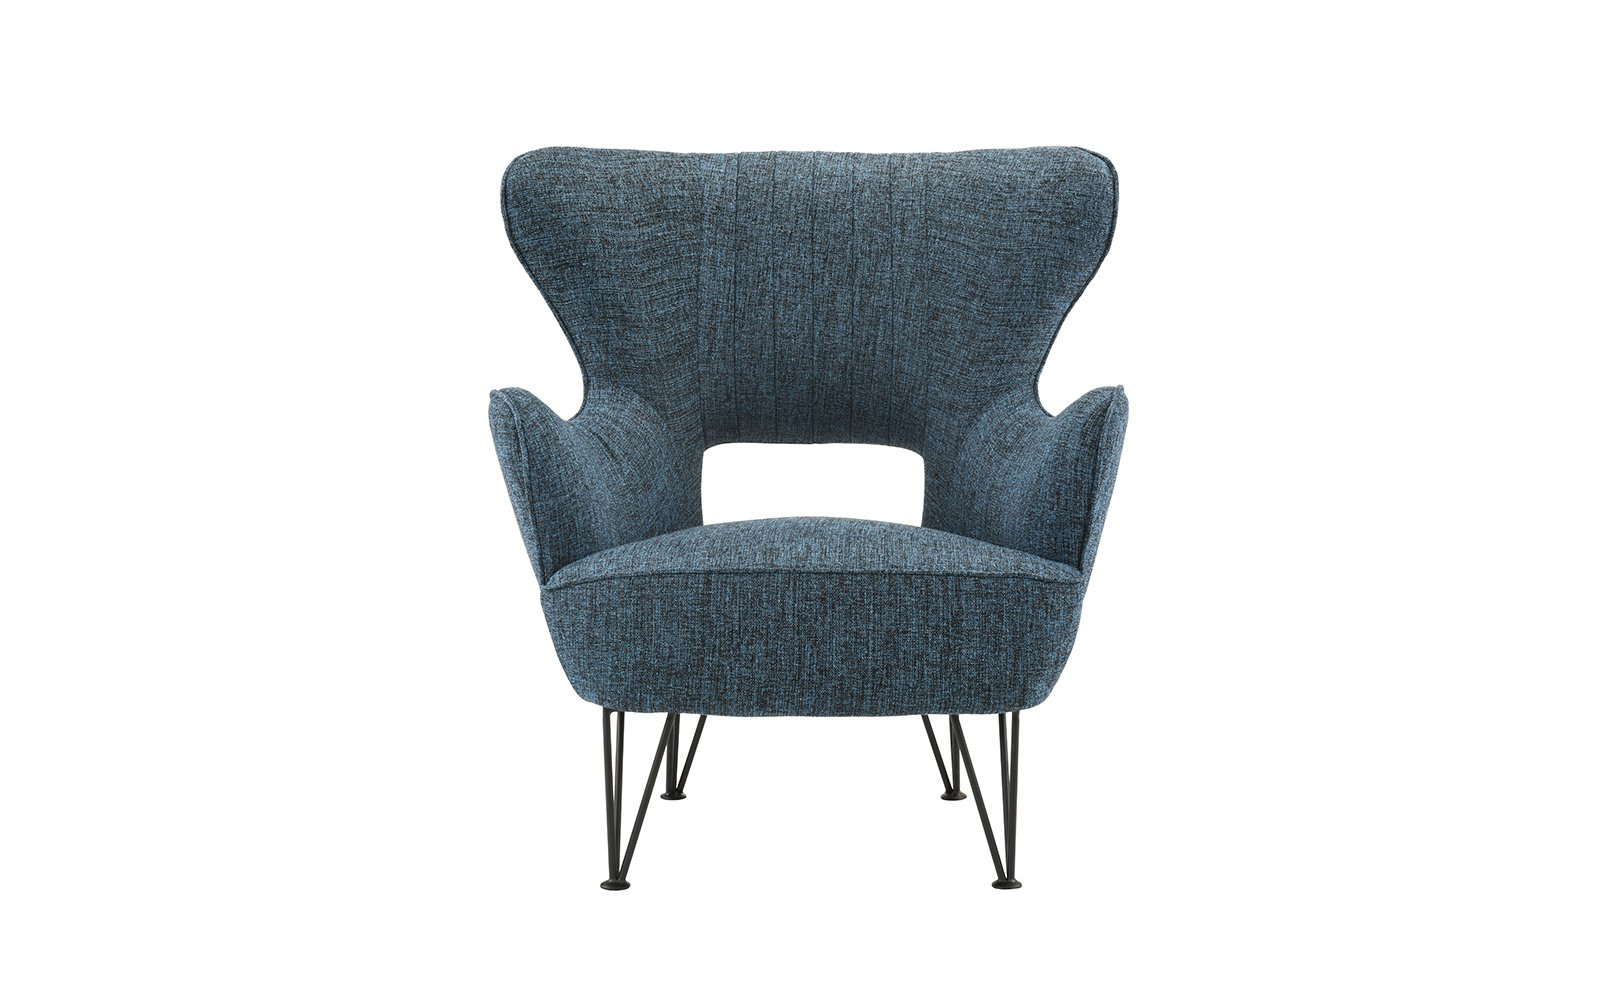 Mid-Century Modern Linen Fabric Accent Armchair with Shelter Style Living Room Chair (Dark Blue) - Armchair with a futuristic yet mid-century modern feel with shelter frame and other modern accents. Features hand picked soft linen fabric with a pleated detail on back rest and pin-legs. Hardwood frame with upholstery in various colors to best fit your decor and style. Tight seat filled with high density foam with comfort foam around frame and back as well. - living-room-furniture, living-room, accent-chairs - 71NV1OOOMhL -